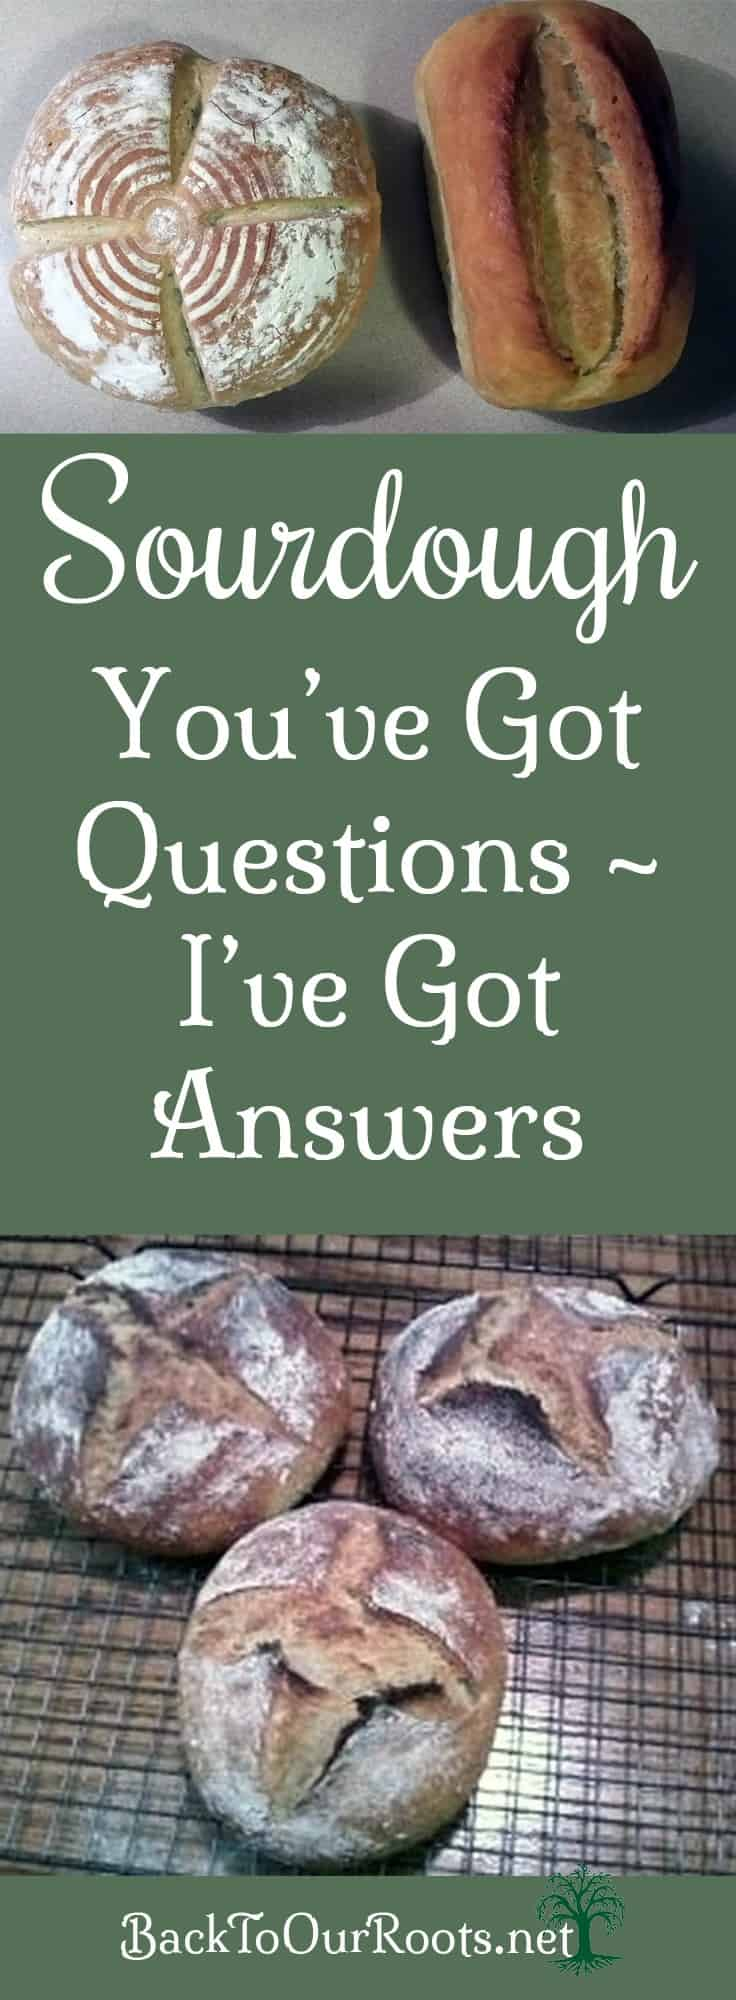 Sourdough State of Mind ~ You've Got Questions, I've Got Answers